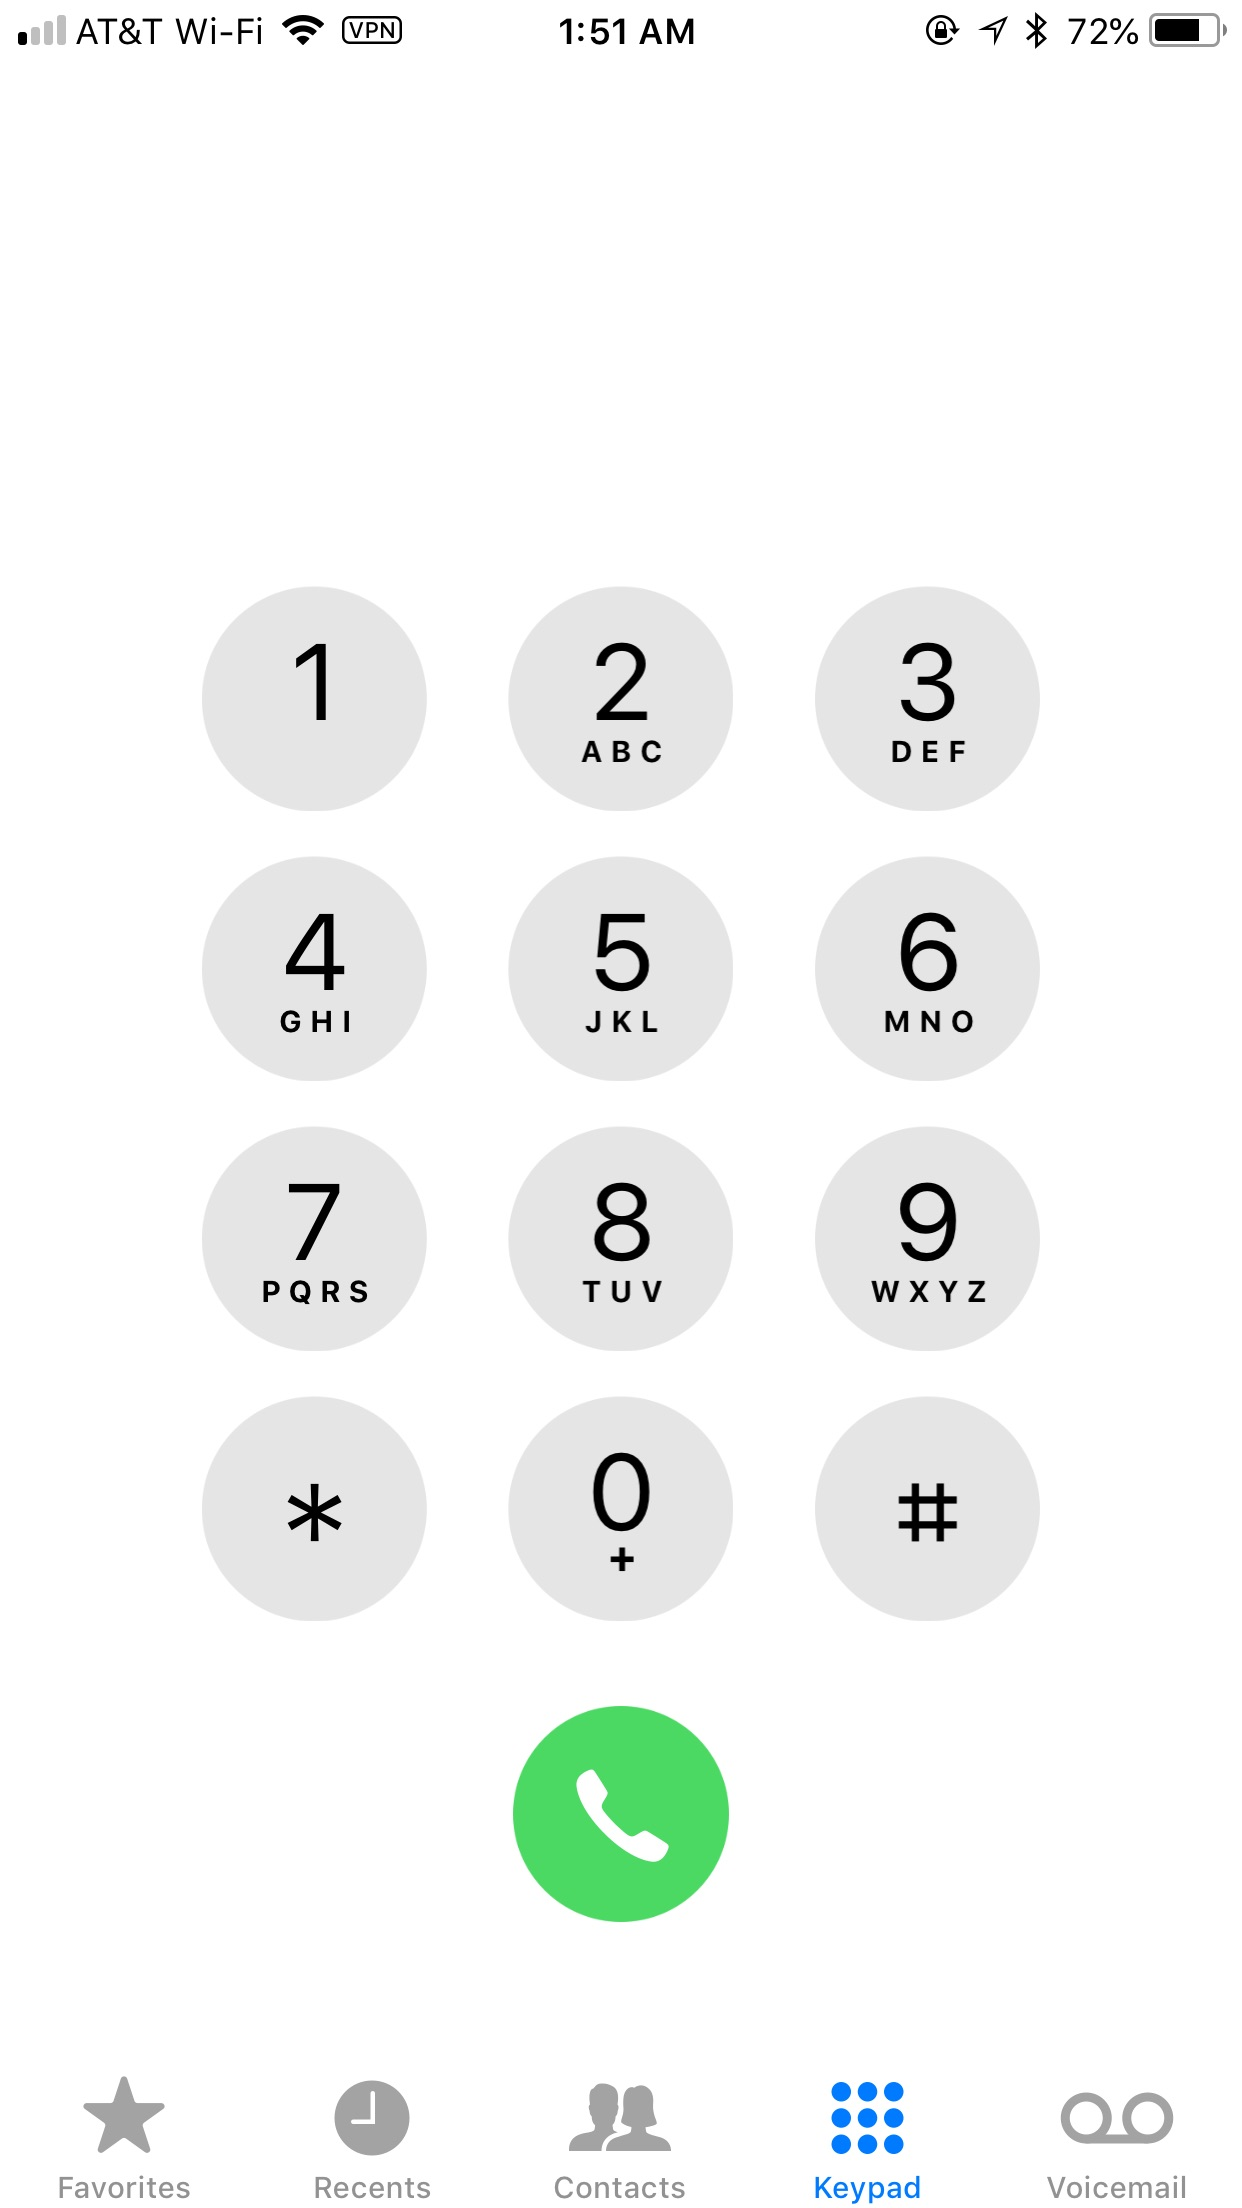 voicemail transcription not working iphone 6s